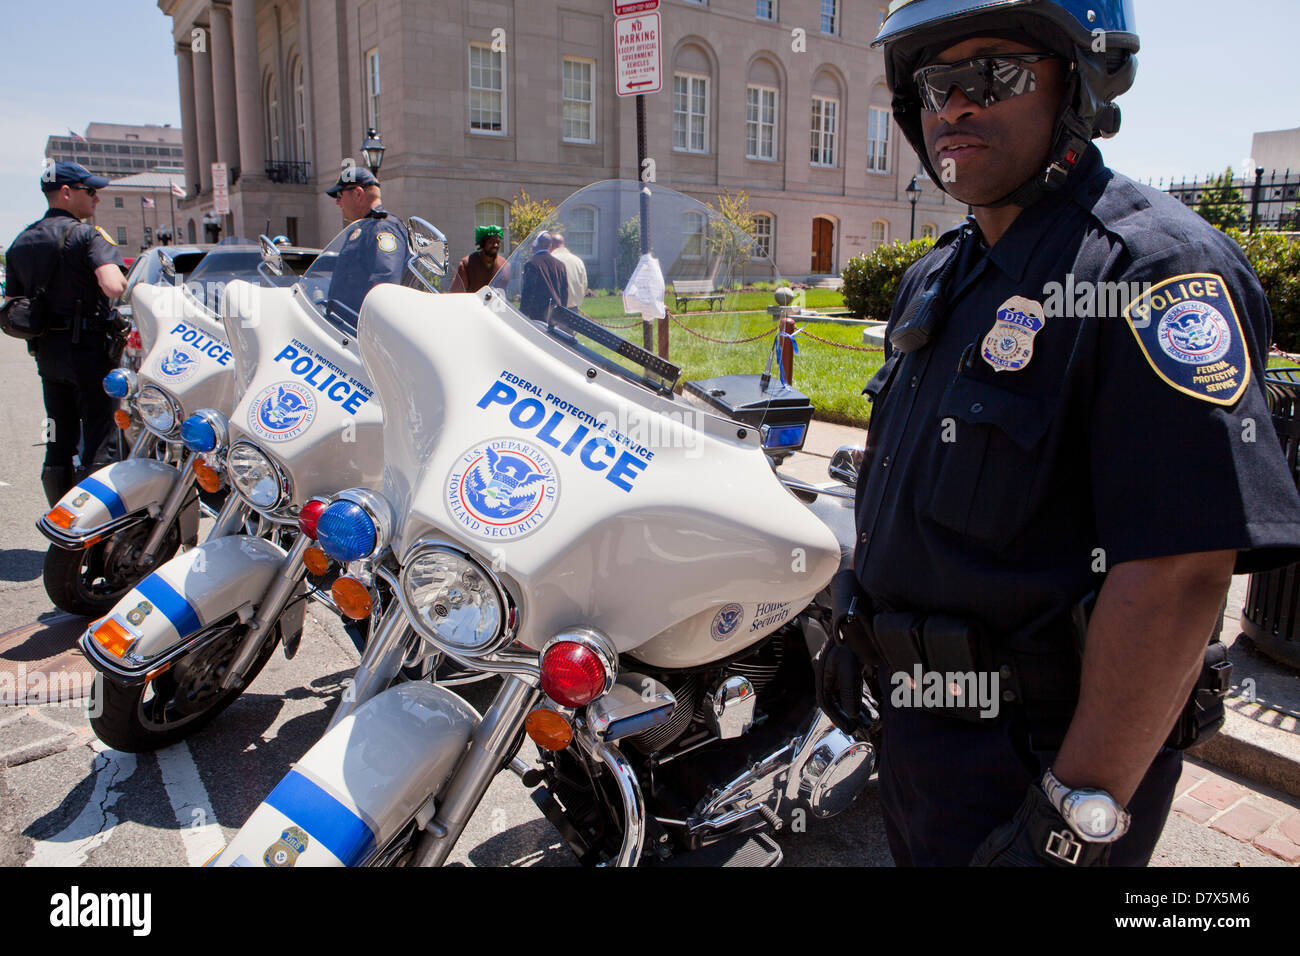 US Department of Homeland Security Federal Protective Service Police officer standing next to service motorcycle - Stock Image